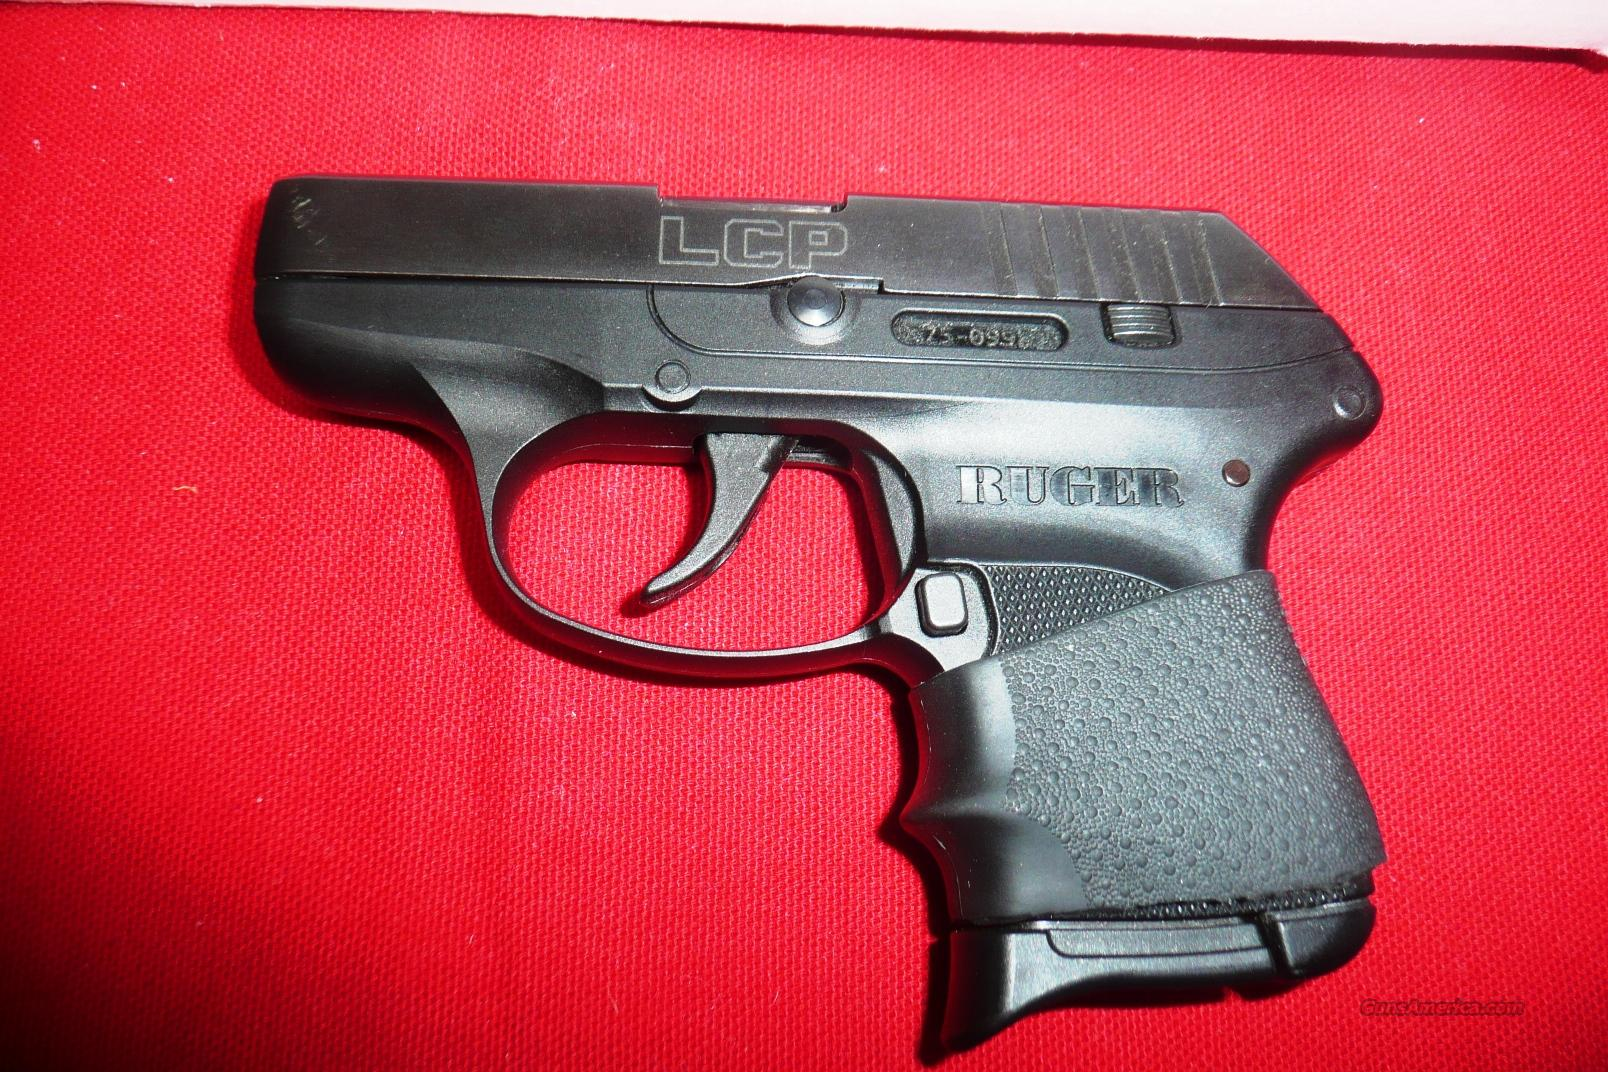 RUGER  LCP  380 acp W/BOX, LOCK, ALL PAPERS  Guns > Pistols > Ruger Semi-Auto Pistols > LCP